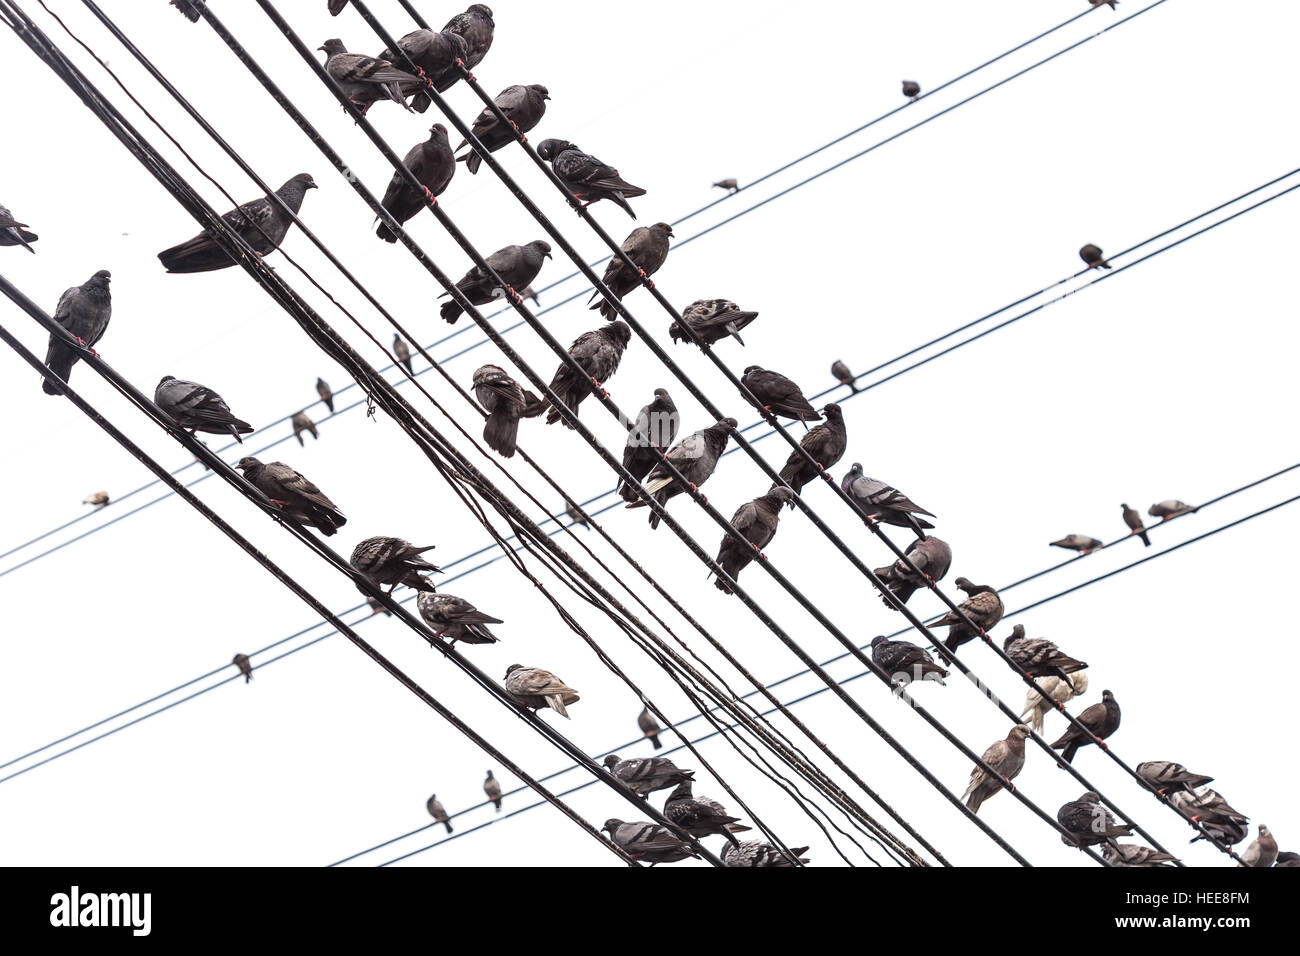 Group of pigeon on an electric wire isolated on white background ...